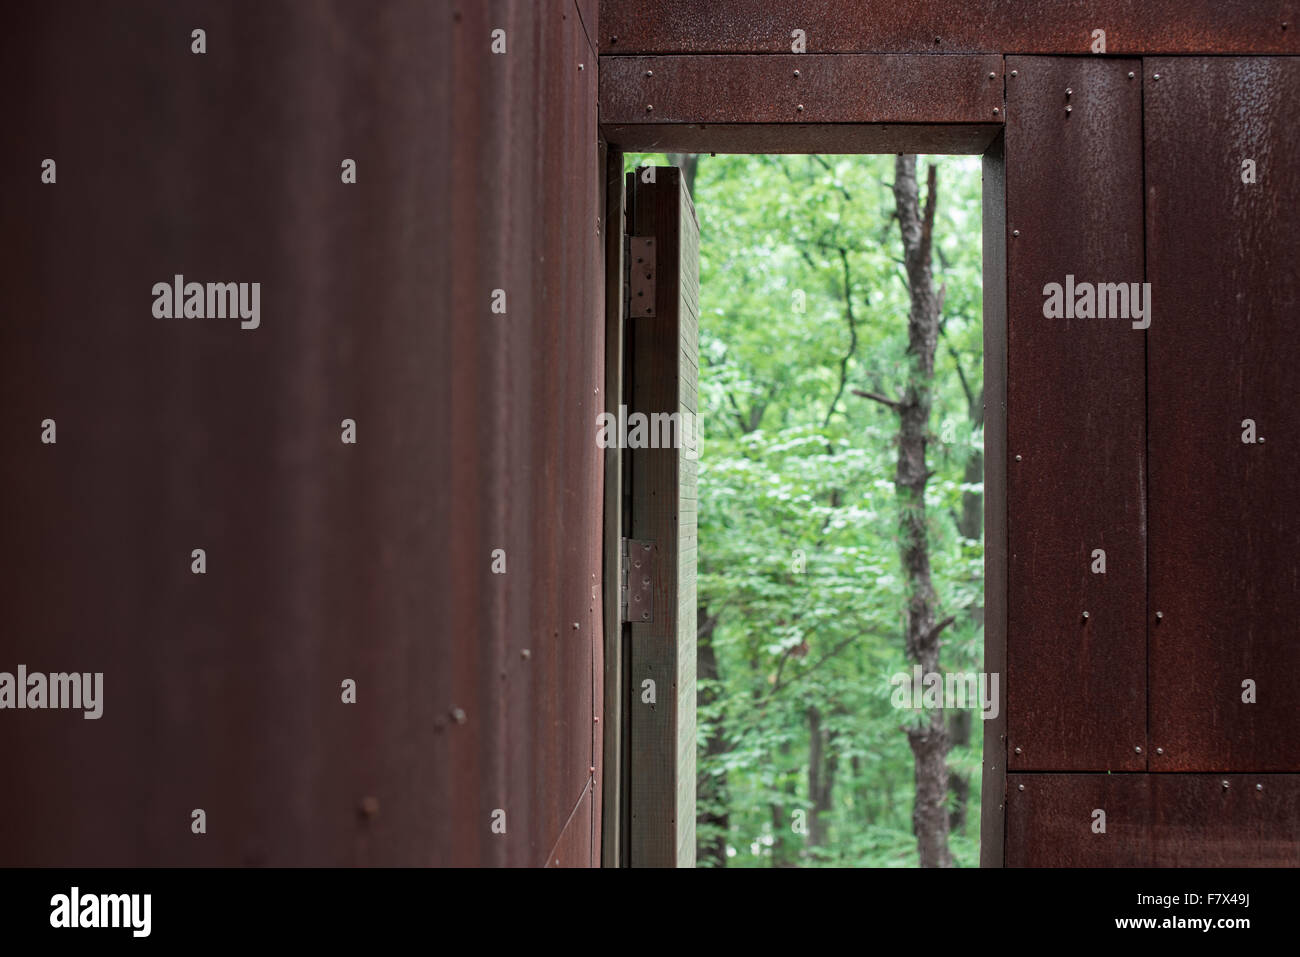 Door Opening into forest, Anyang, Gyeonggi-do, South Korea - Stock Image